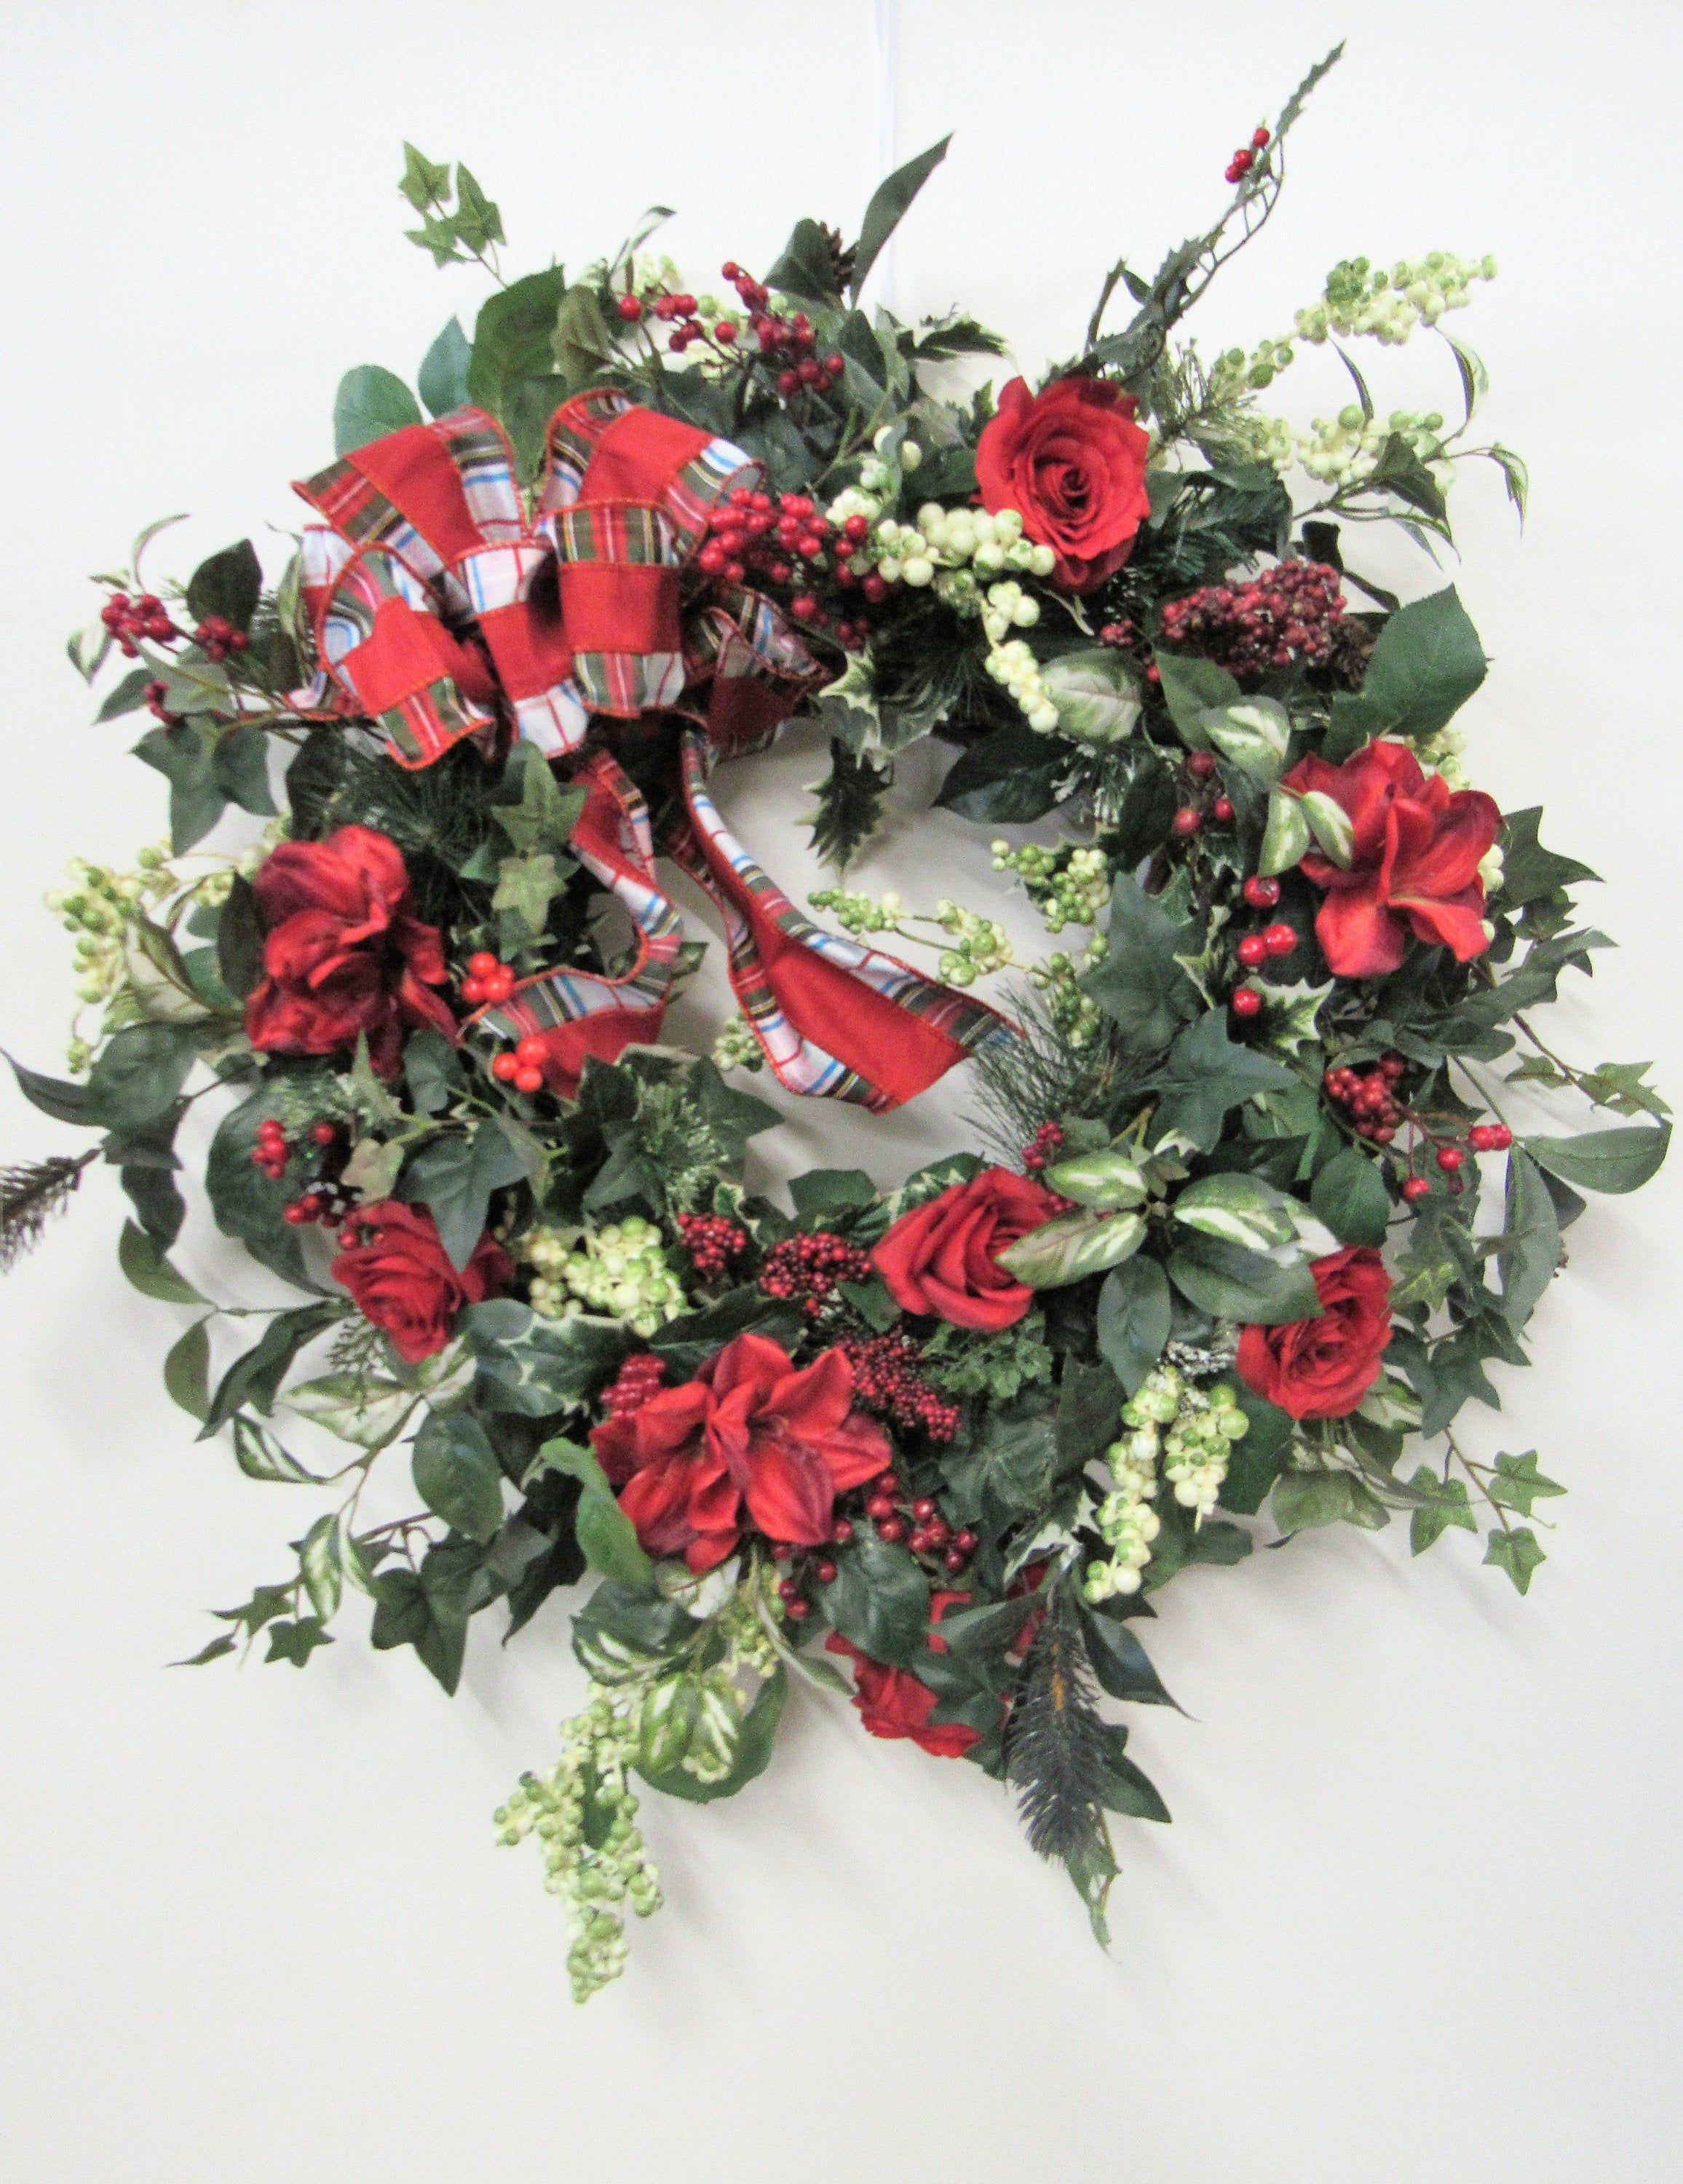 Red Rose Silk Floral Transitional Winter Front Door Wreath Winter Wreath Transitional Wreath Winter Decor Red Rose Wreath Red Rose Wreath Winter Wreath Rose Wreath